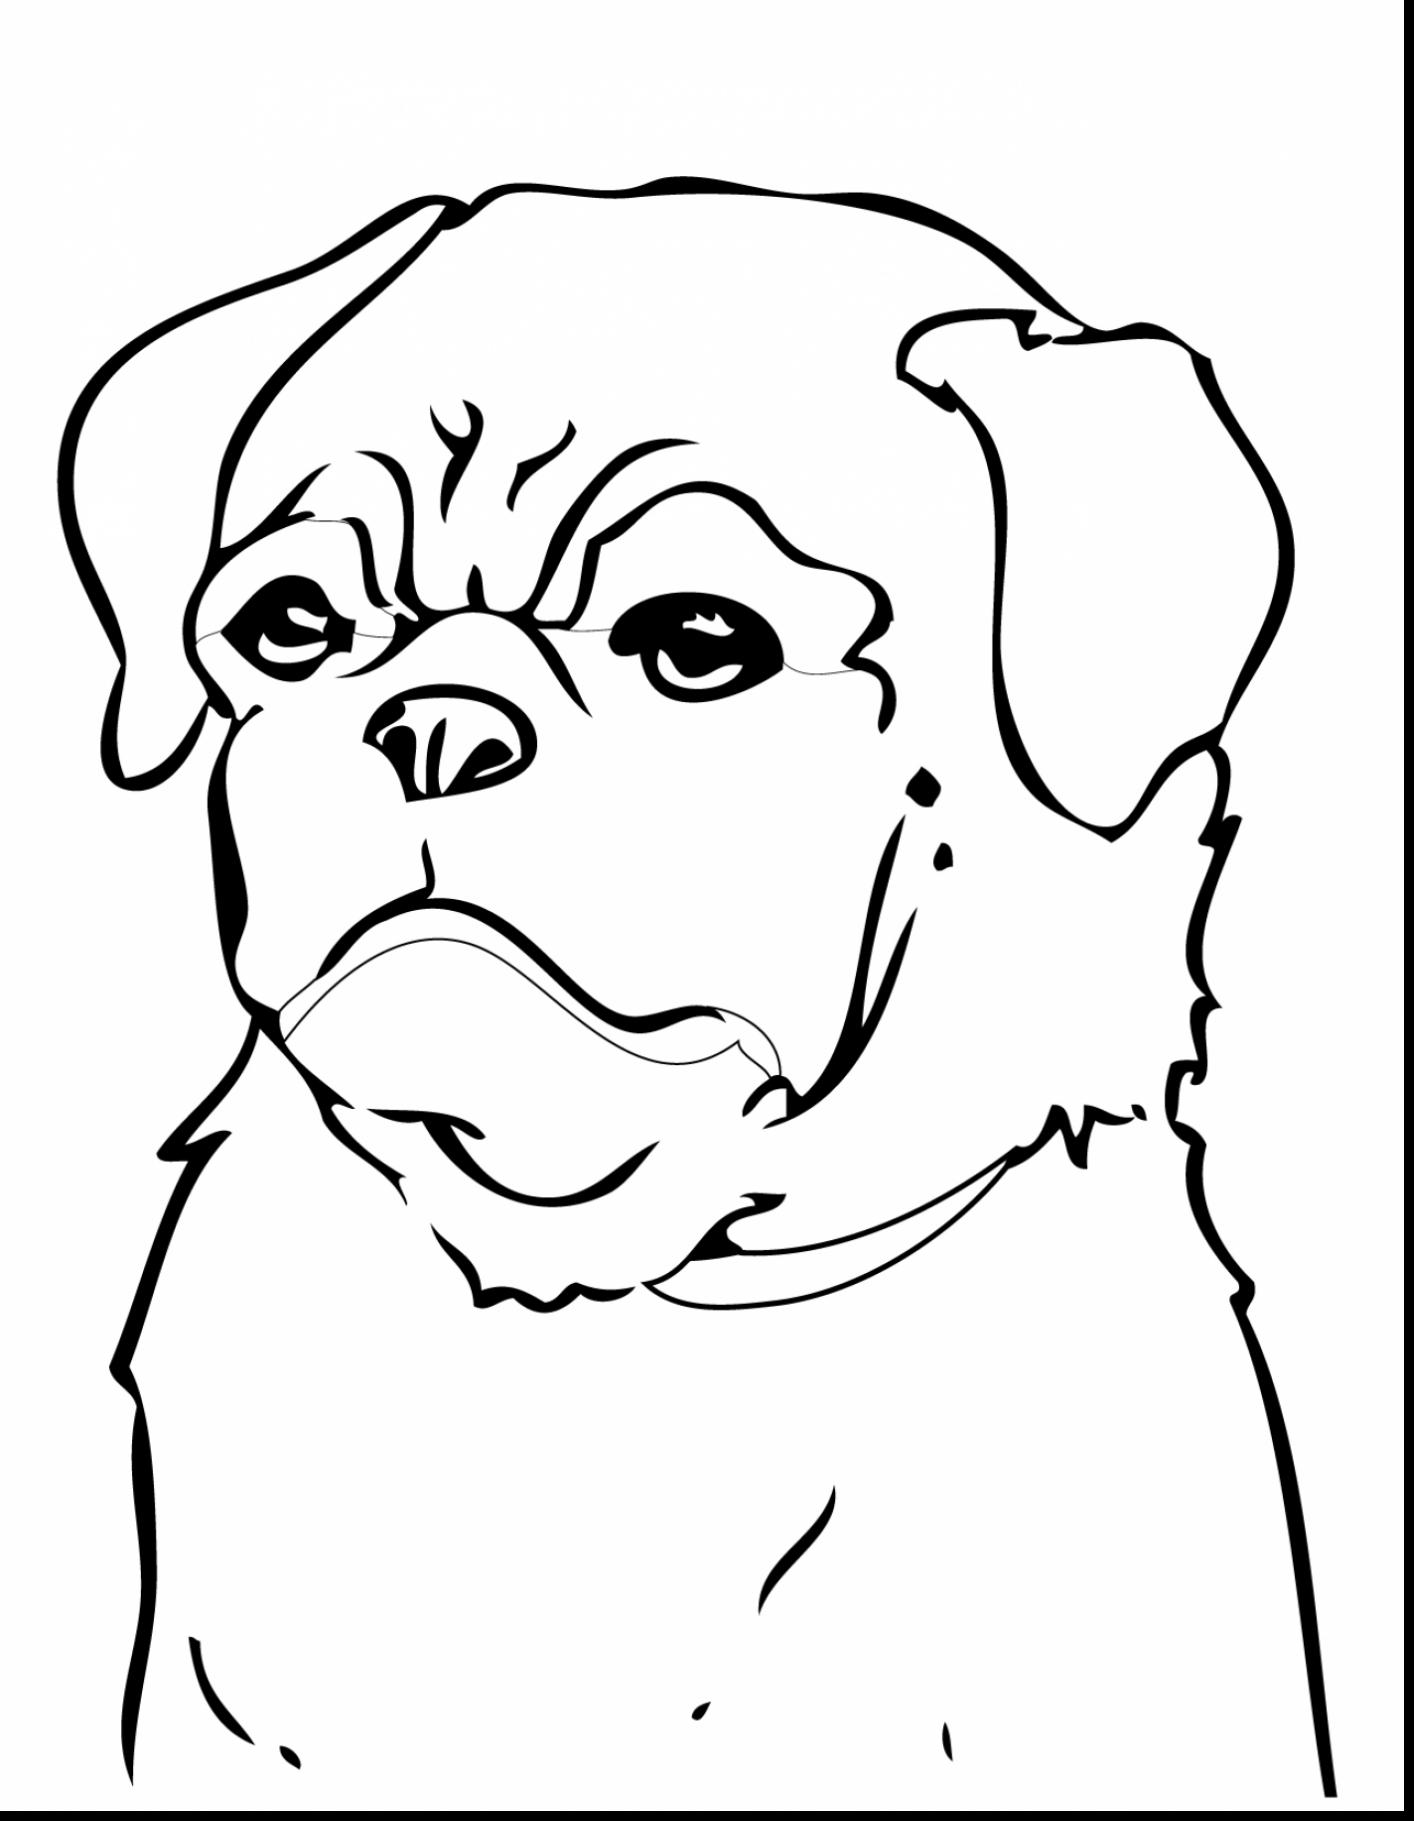 Drawn pug fabulous Pug coloring coloring coloring pages